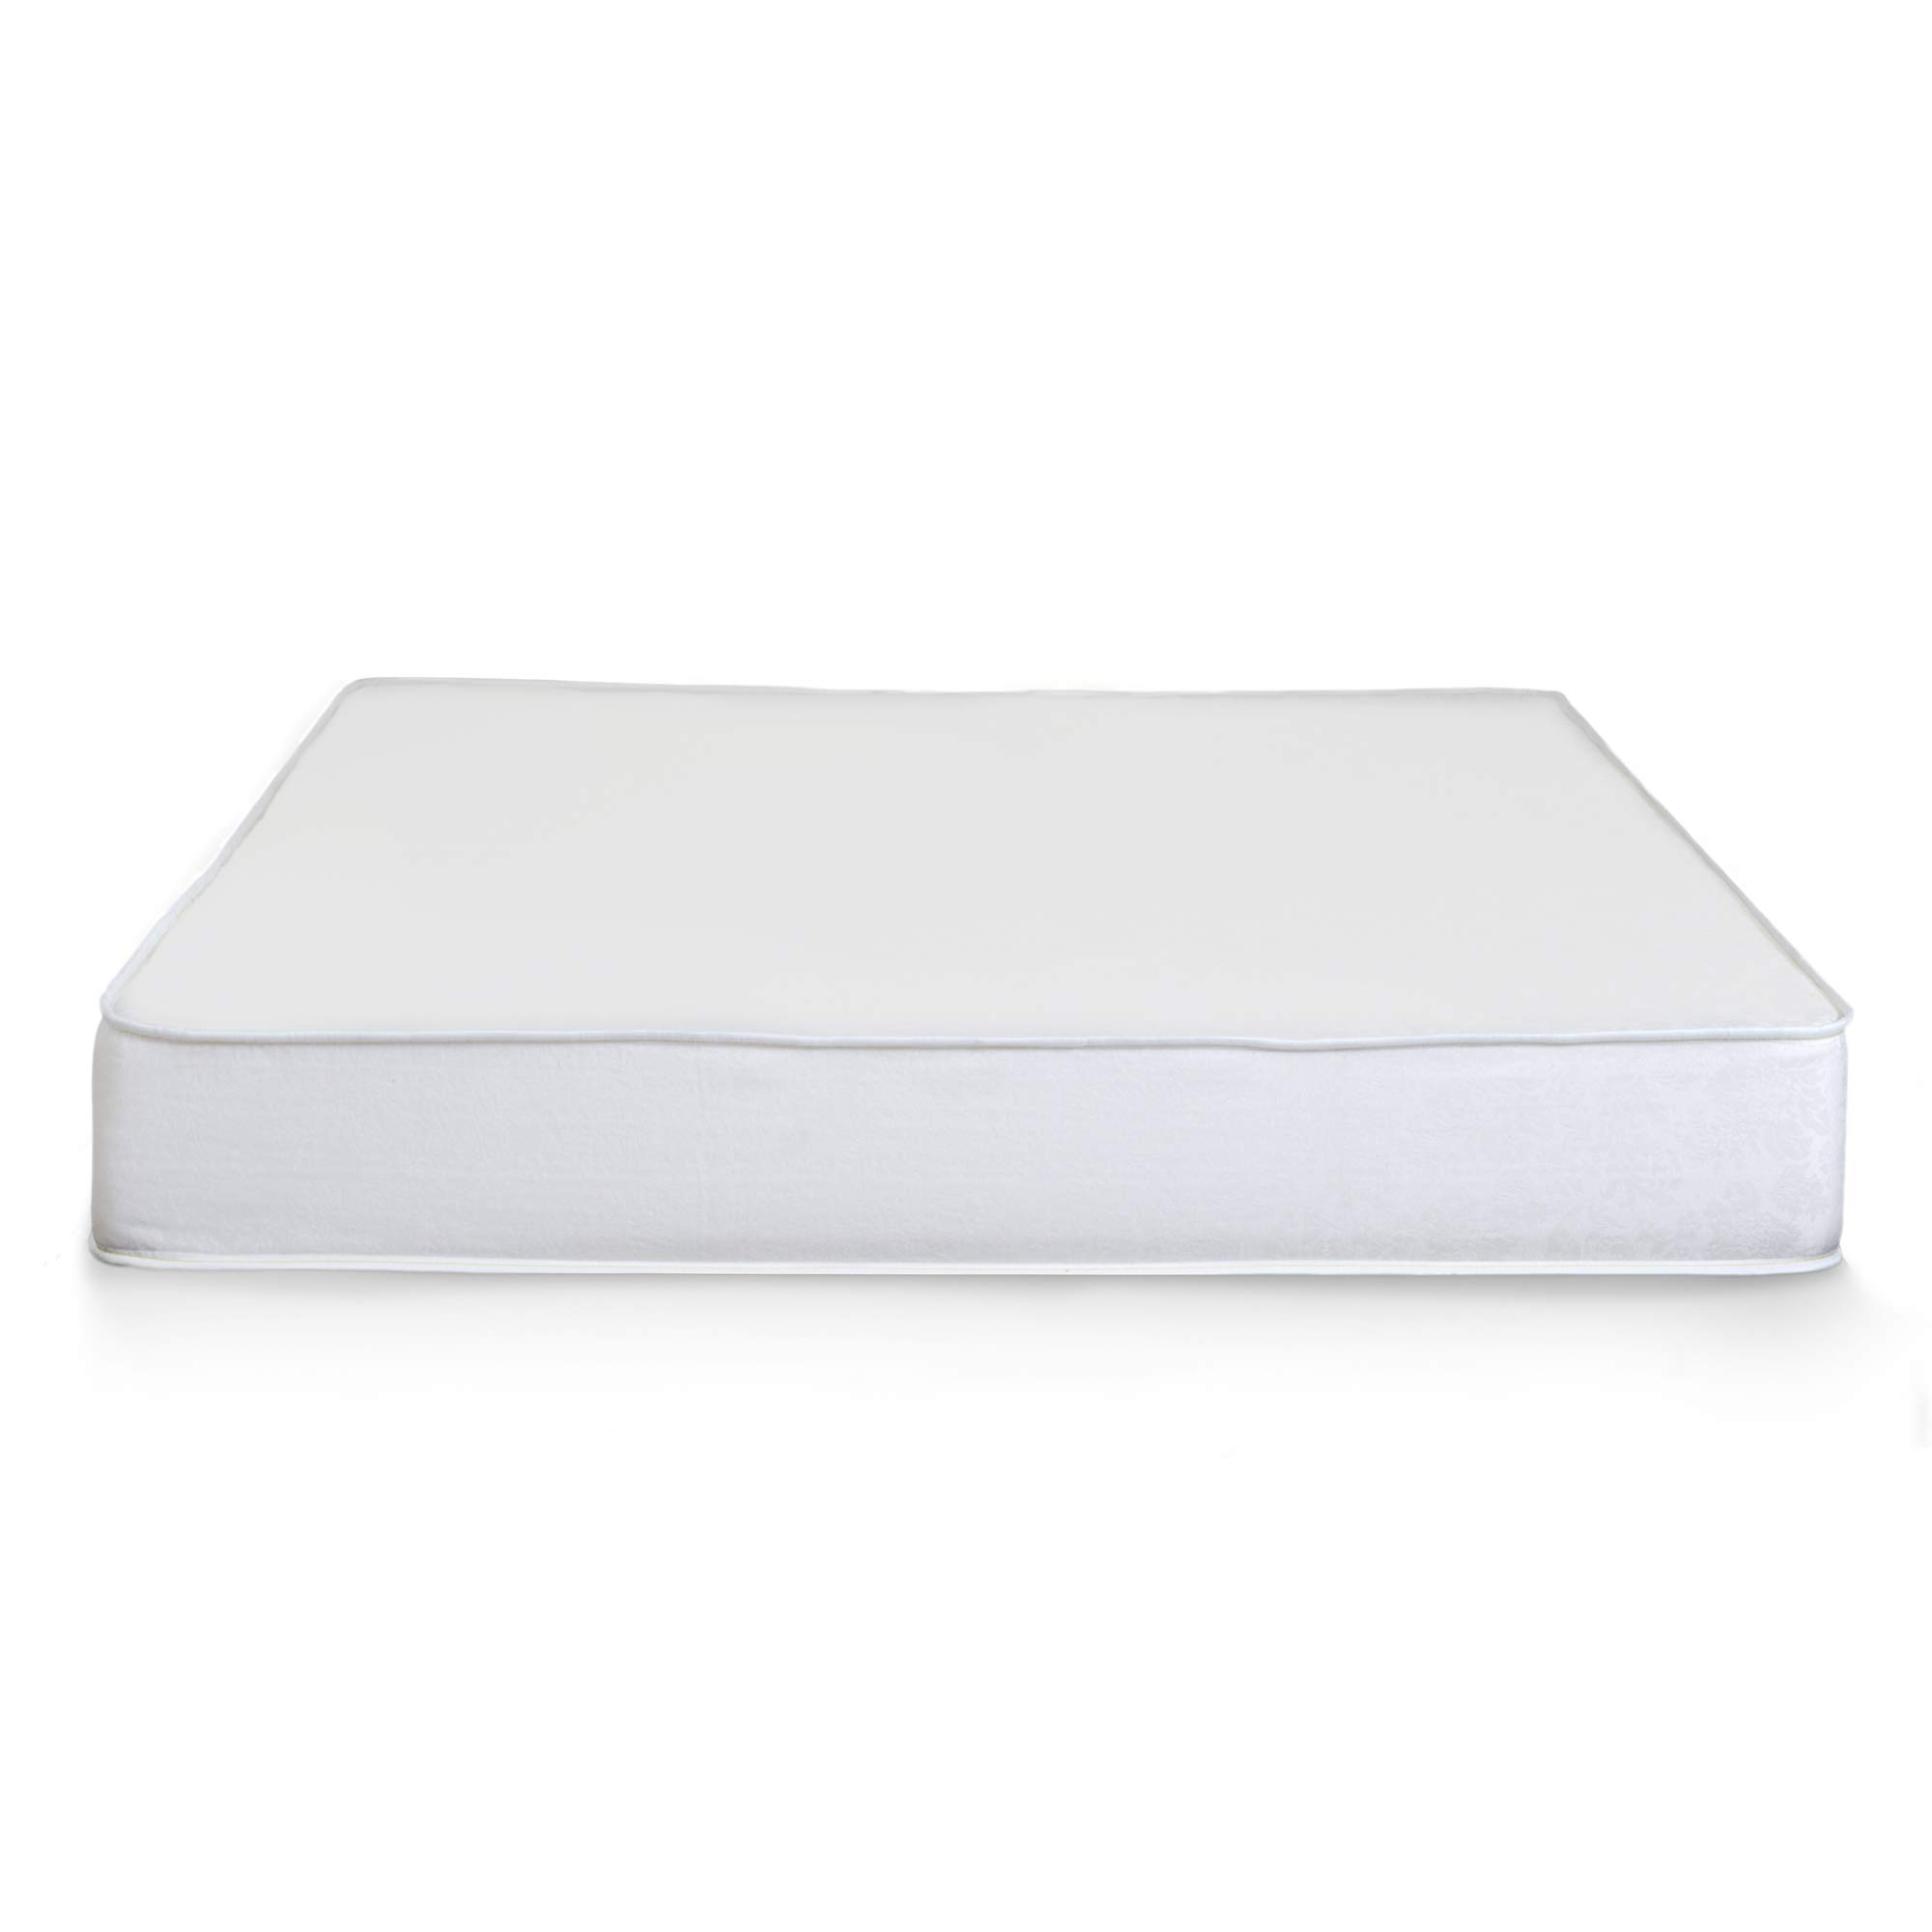 Serenia Sleep 8-Inch Memory Foam RV Mattress, Short Full by Serenia Sleep (Image #3)